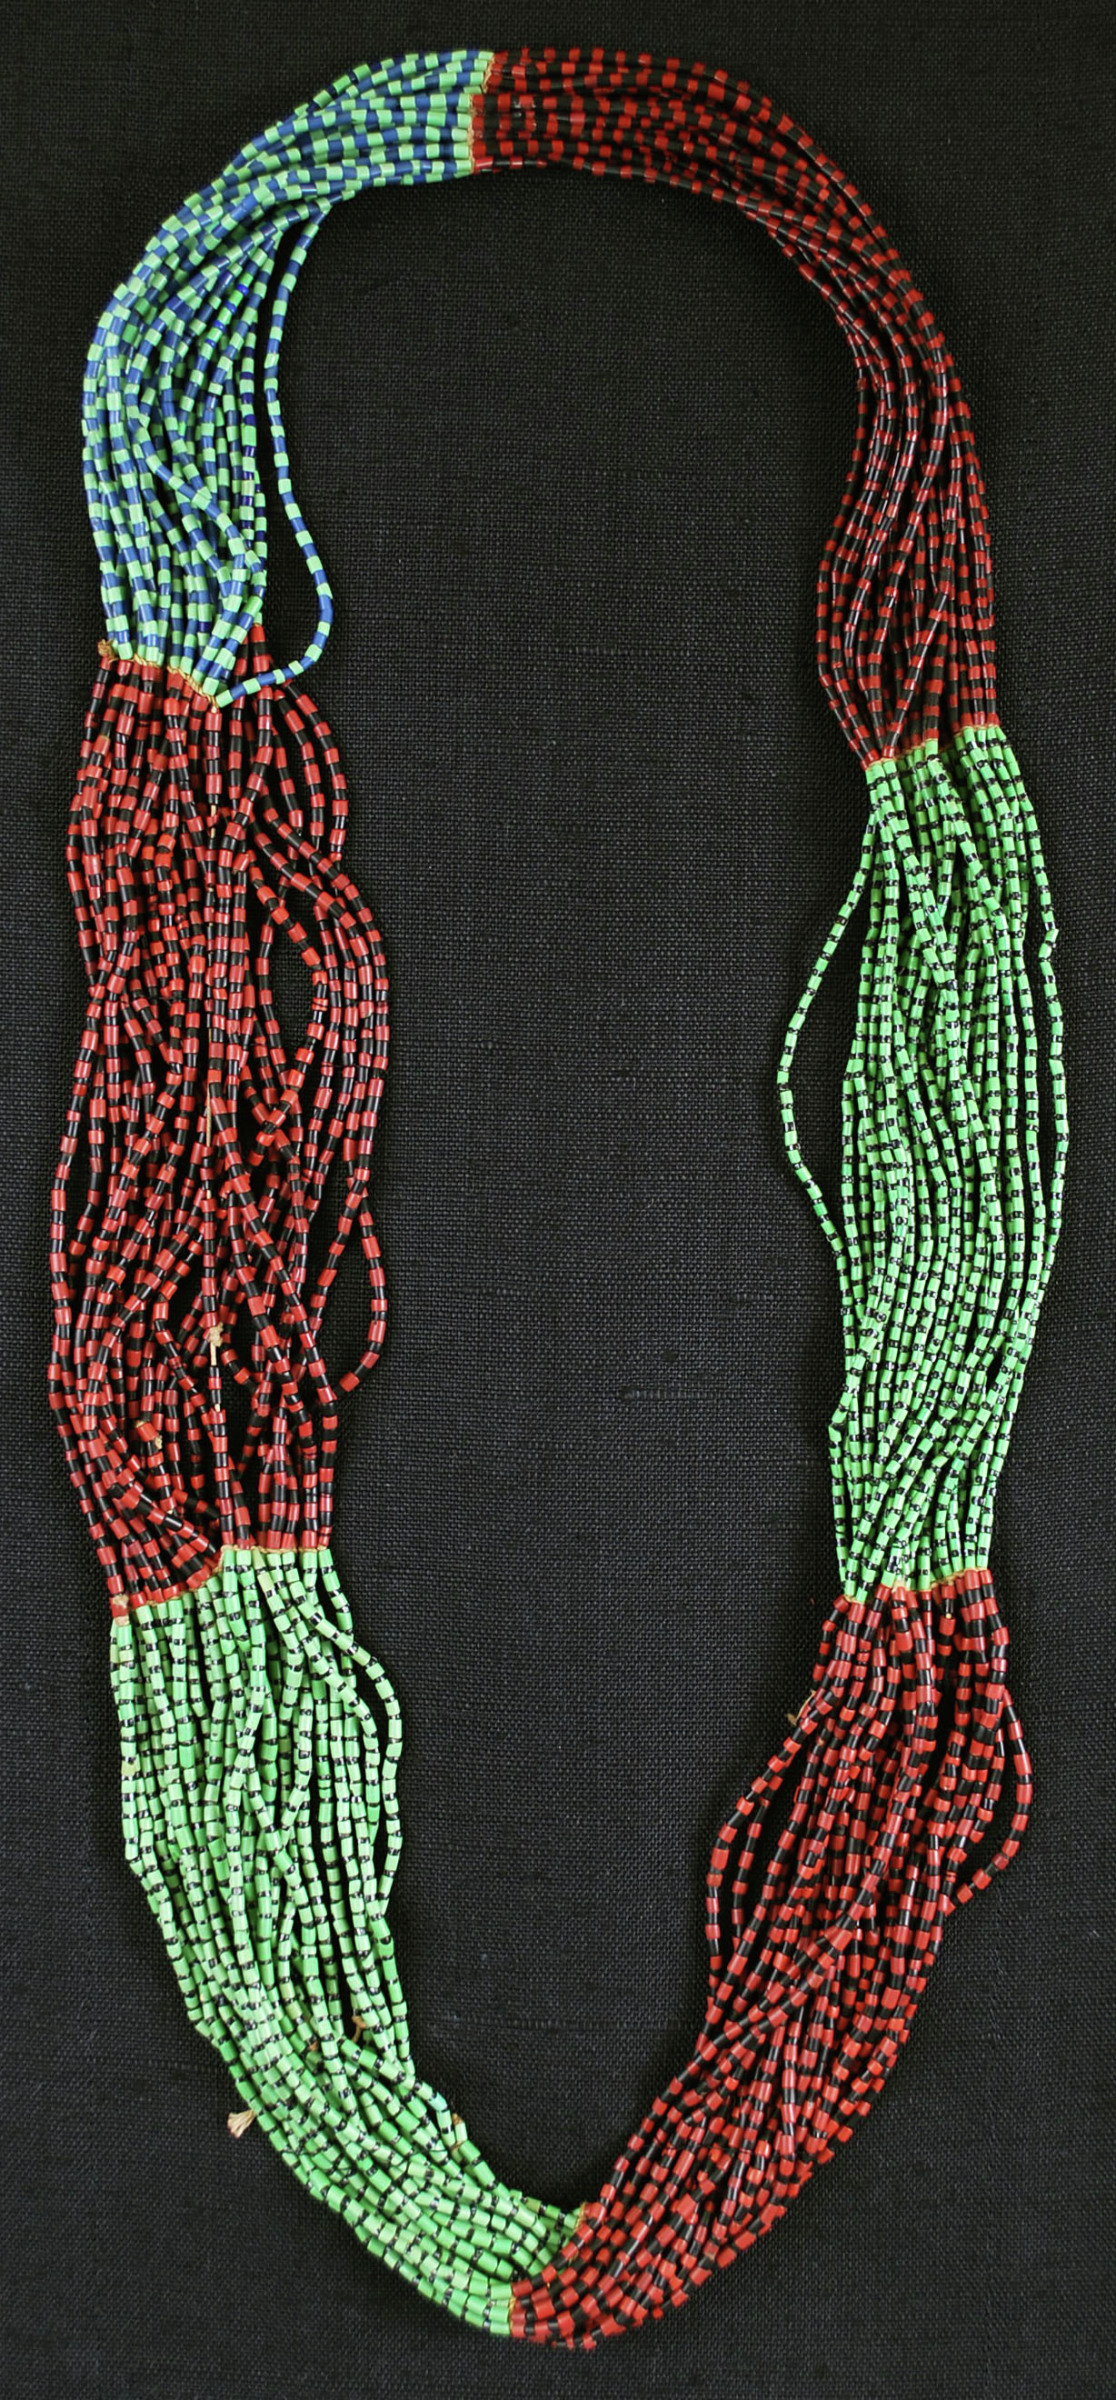 Necklace (Sehadla), Pedi people, South Africa, African, glass bead; thread